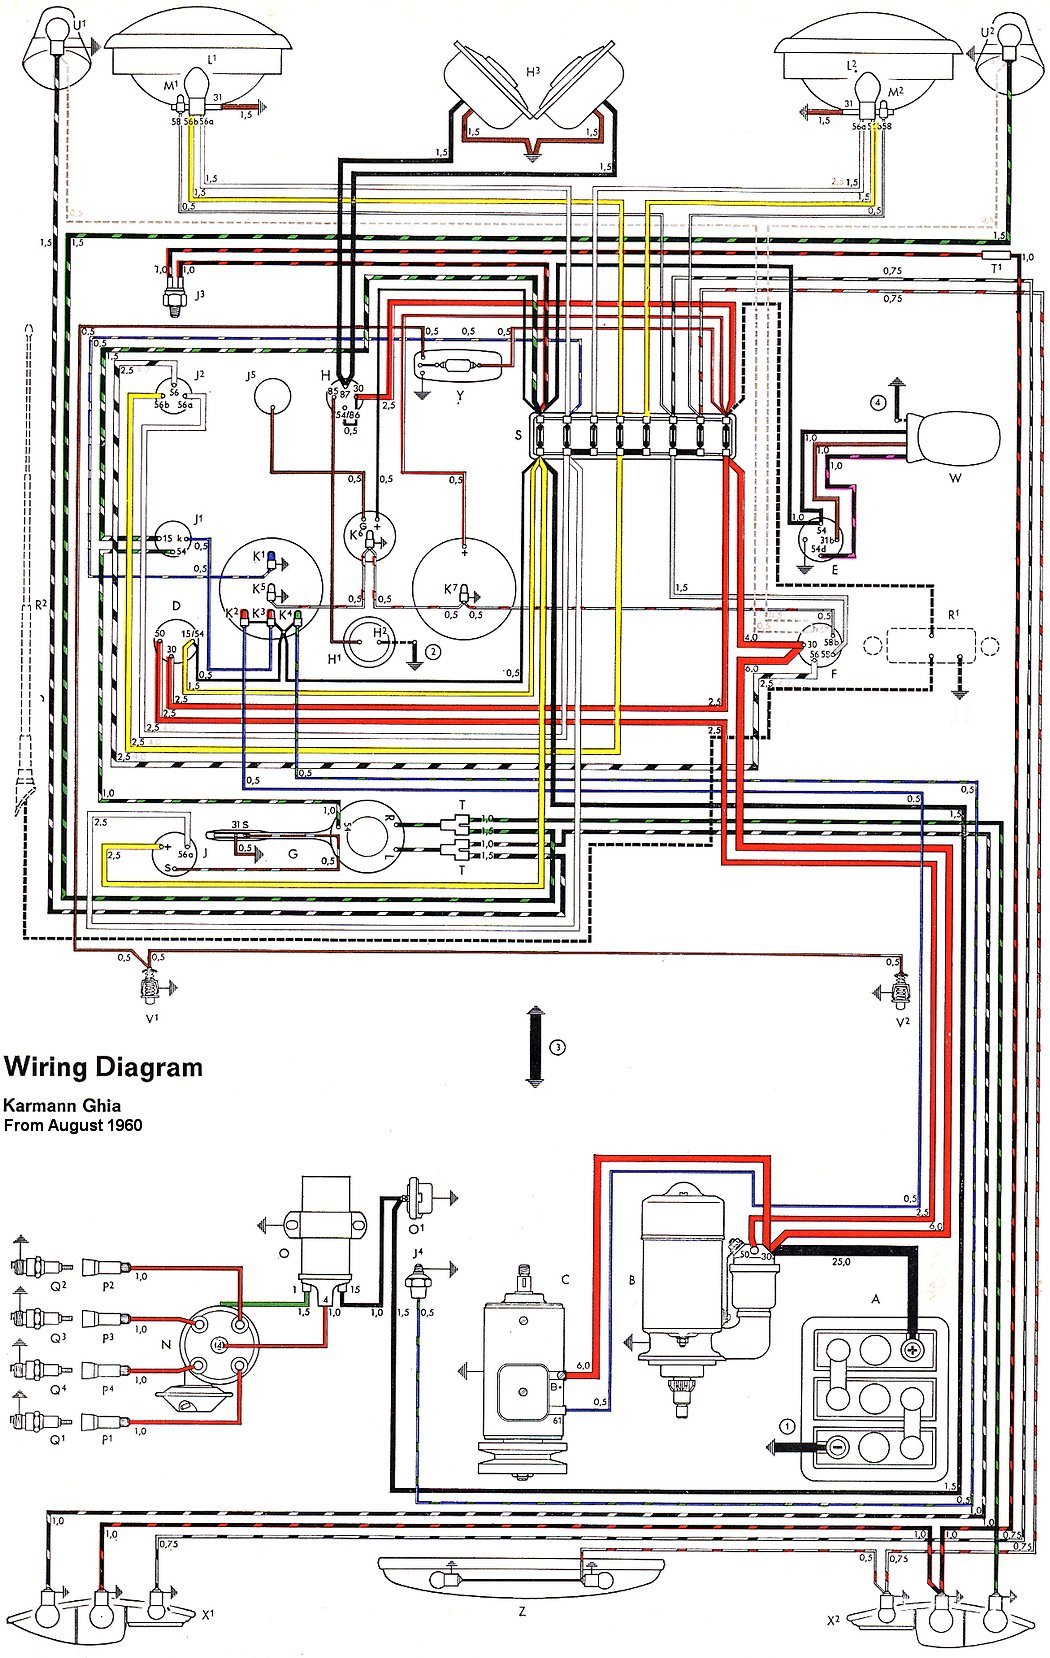 Bug Engine also 1974 Vw Thing Wiring Diagram moreover Vw Engine Cooling System  ponents together with ProductDetails further Vw Bug Fuel Injection Kit. on 74 vw beetle wiring diagram